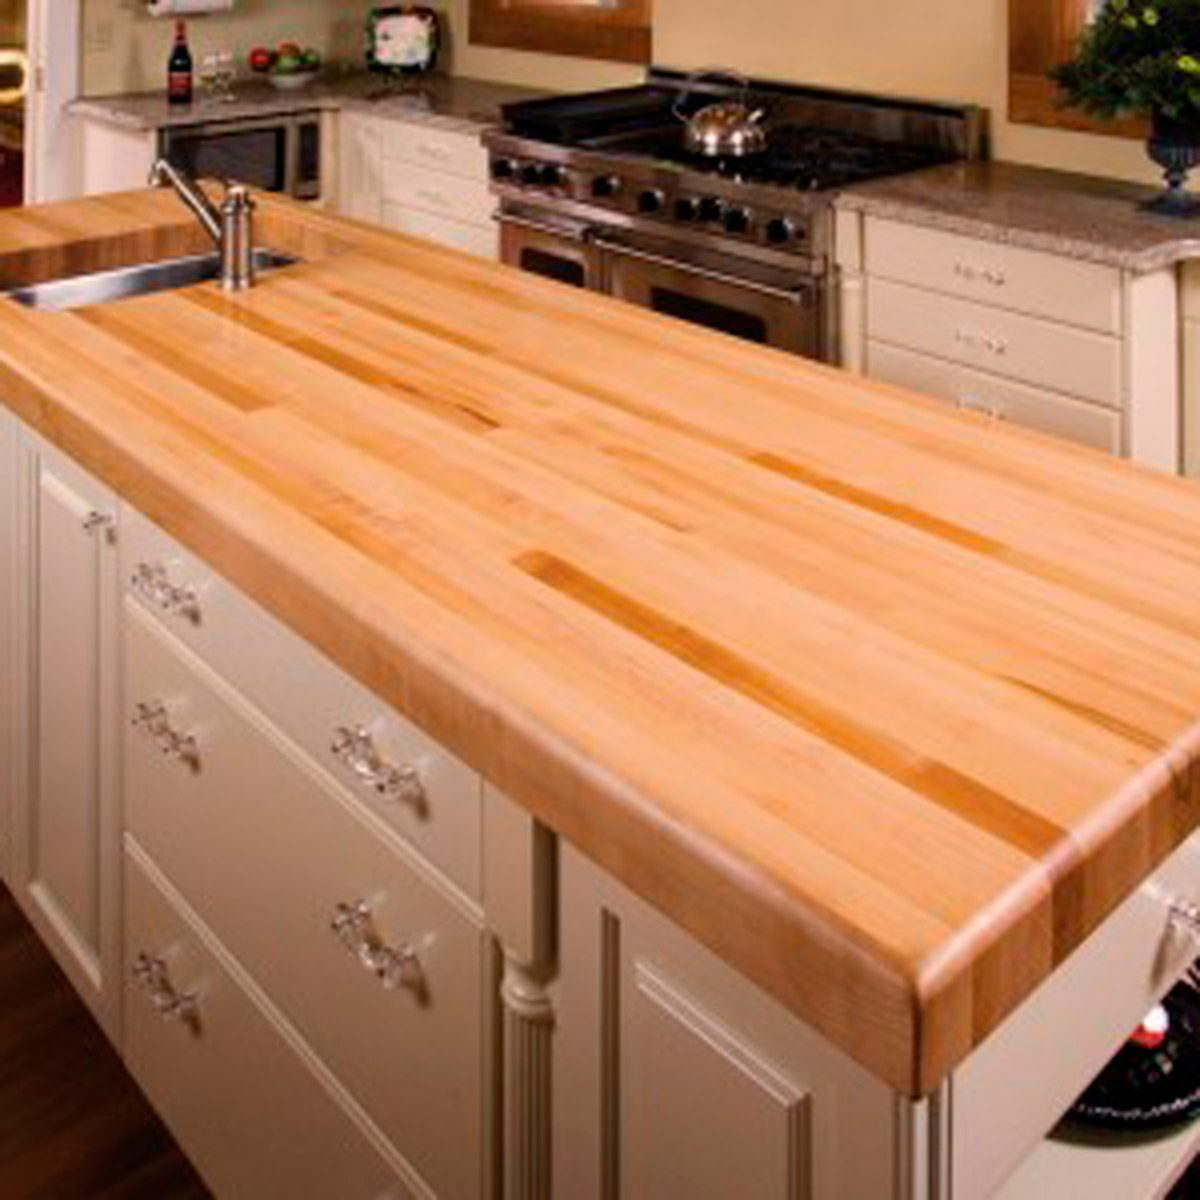 What To Know About Your Butcher Block Countertop Family Handyman